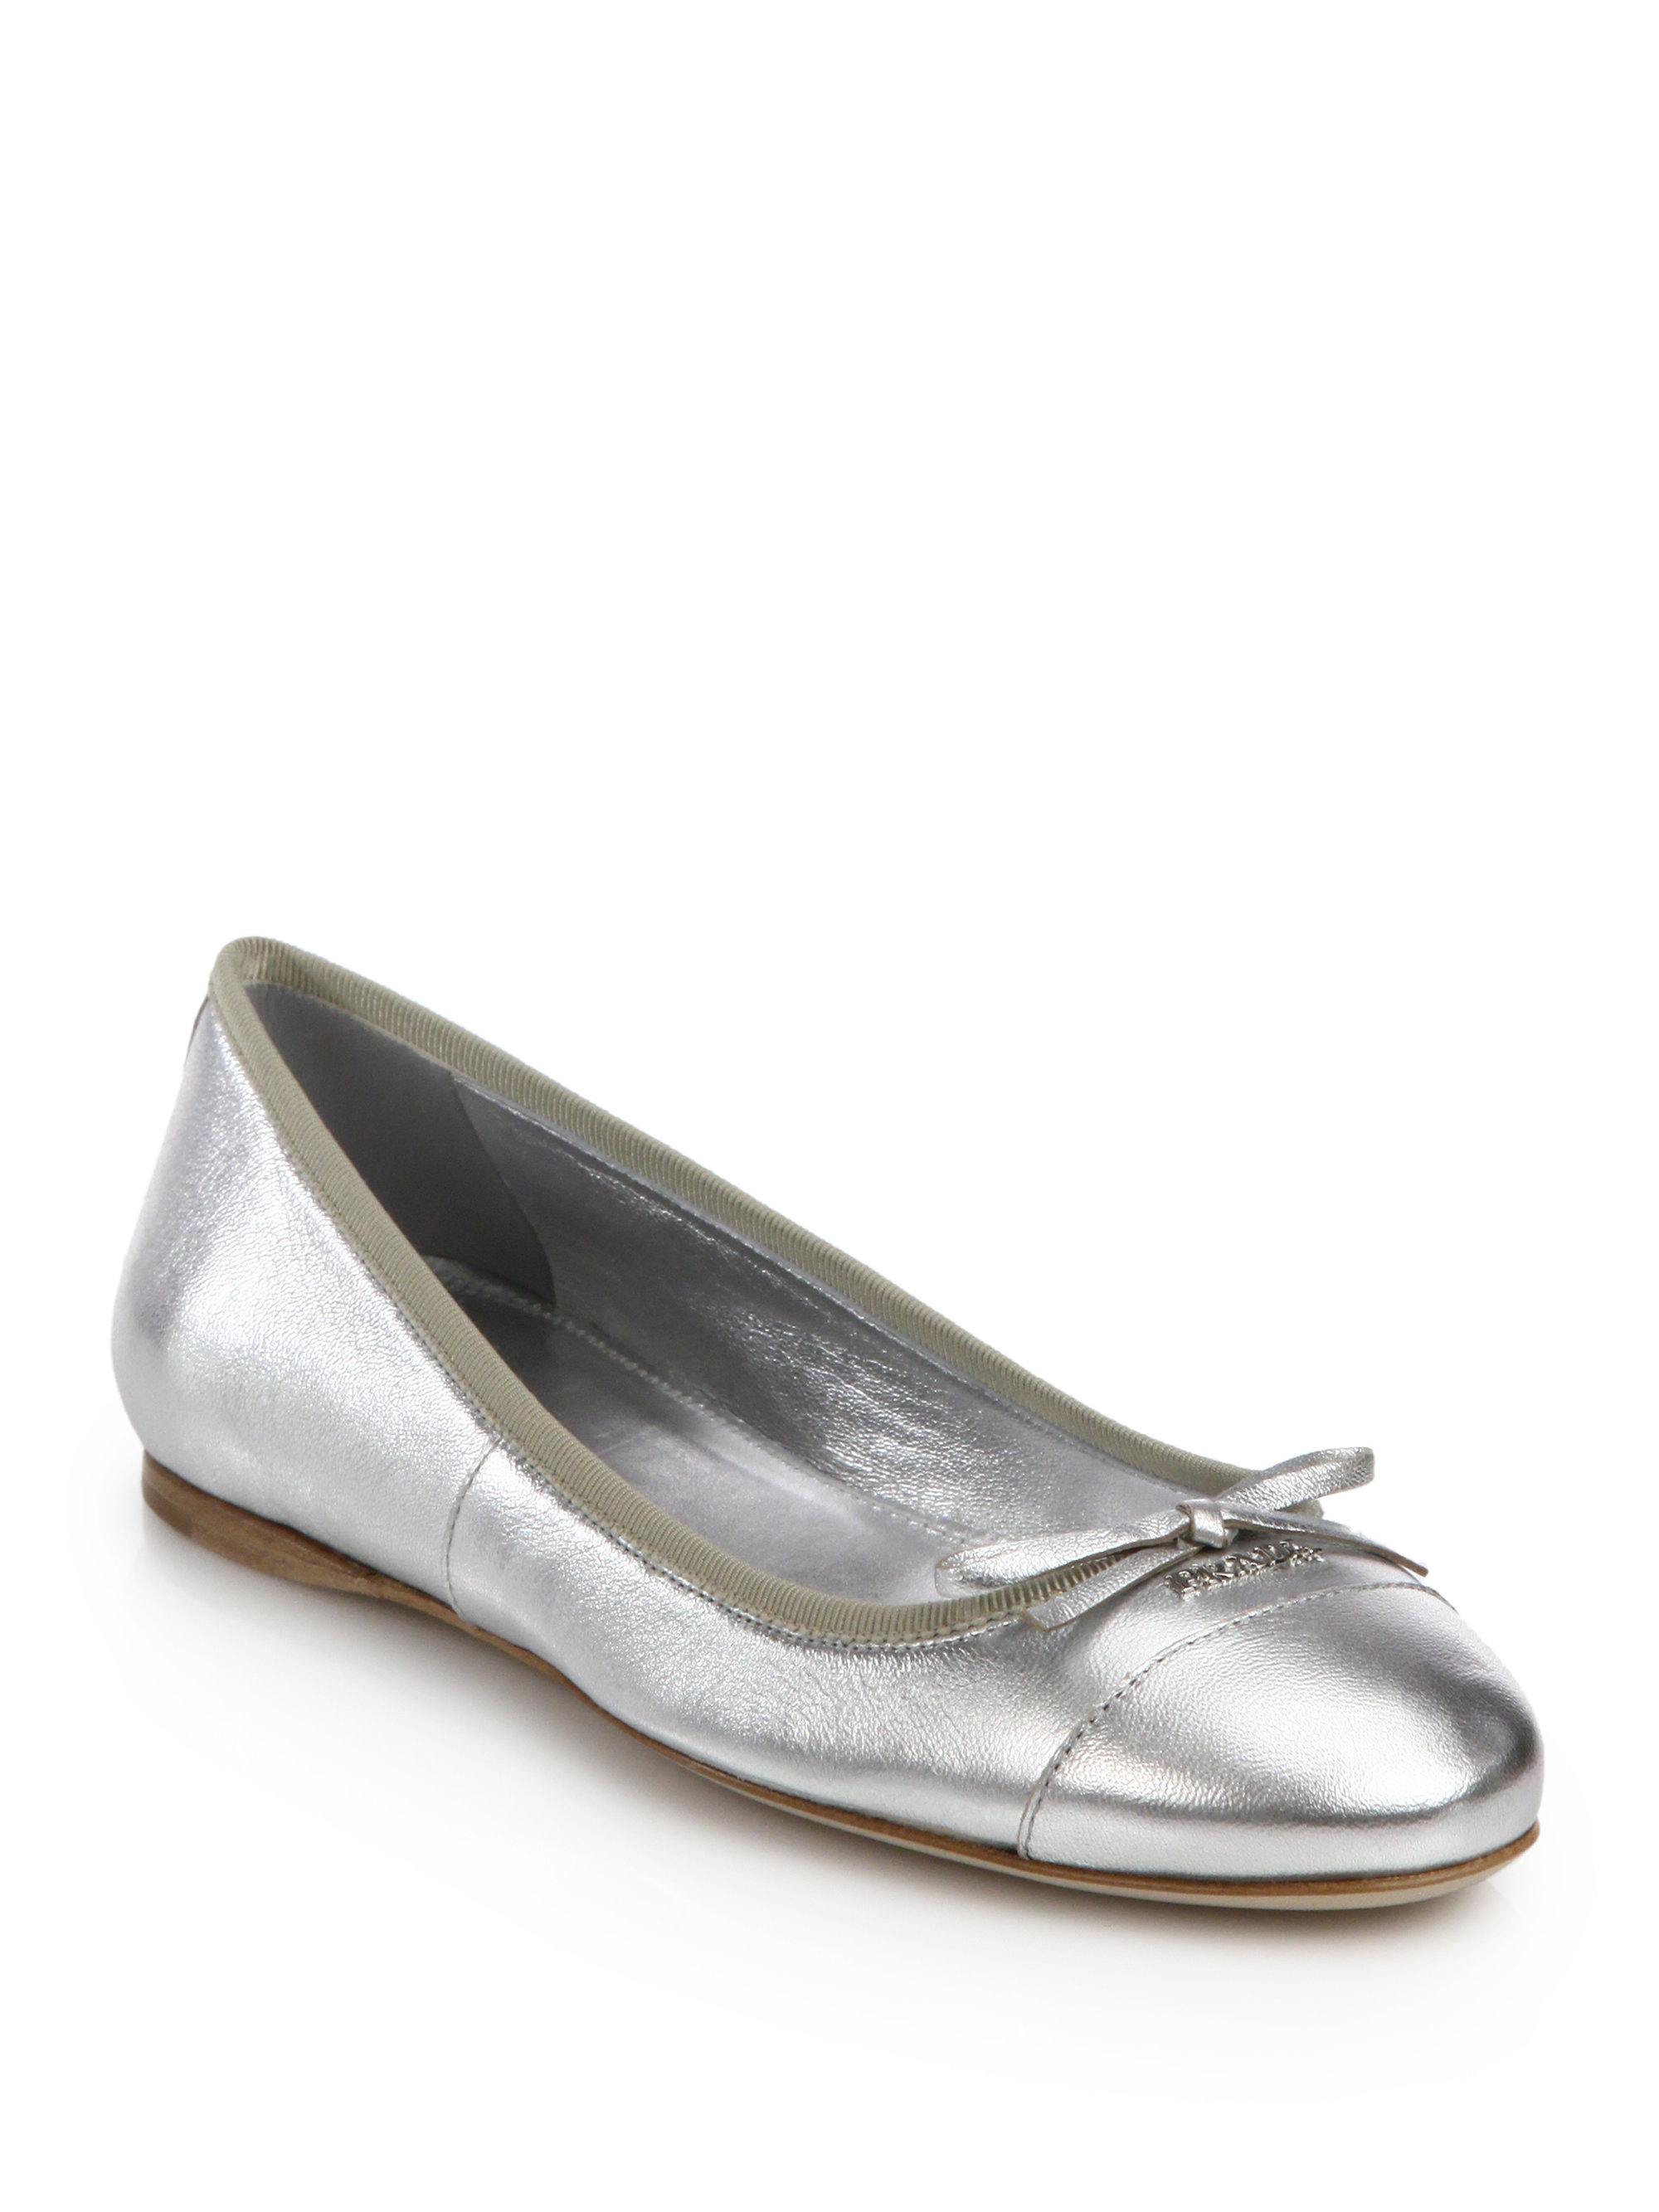 L'Amour Silver Sparkle Bow Ballet Flat Shoe Toddler Girls Sold by Sophias Style Boutique Inc. $ $ L'amour Girls Silver Flower Accent Thong Trendy Sandals Toddler. Sold by Sophias Style Boutique Inc. $ $